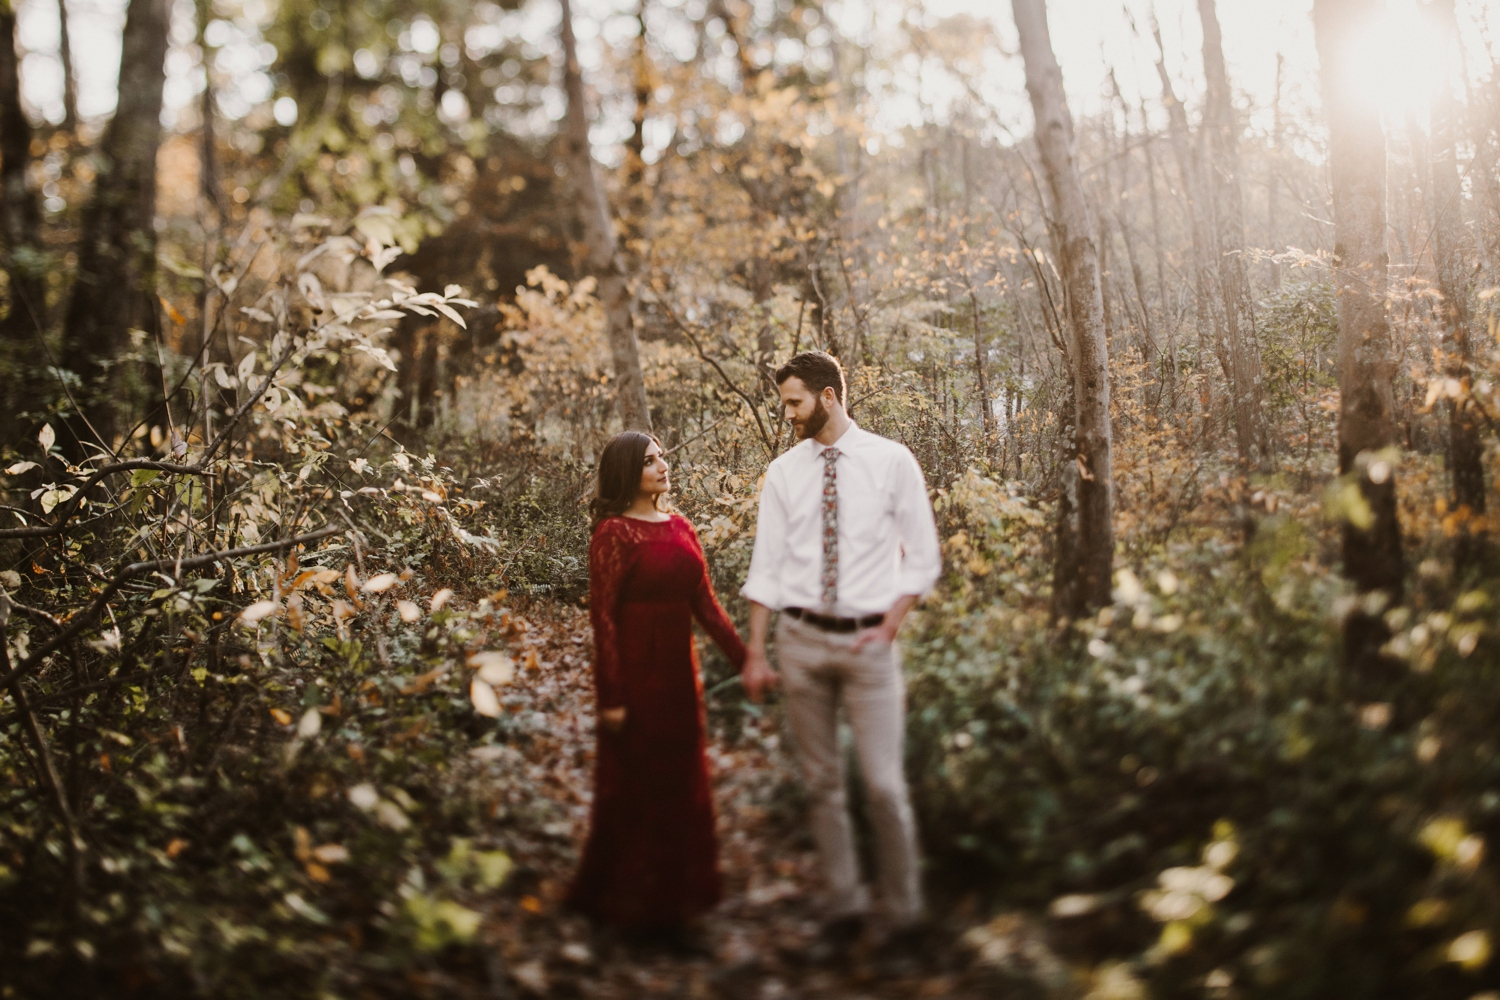 sundas-and-scotts-engagement-25_baltimore-washington-d-c-waterfall-kilgore-engagement-session-maxi-dress-earthy-maryland-wedding-photographer-kate-ann-photography-phot